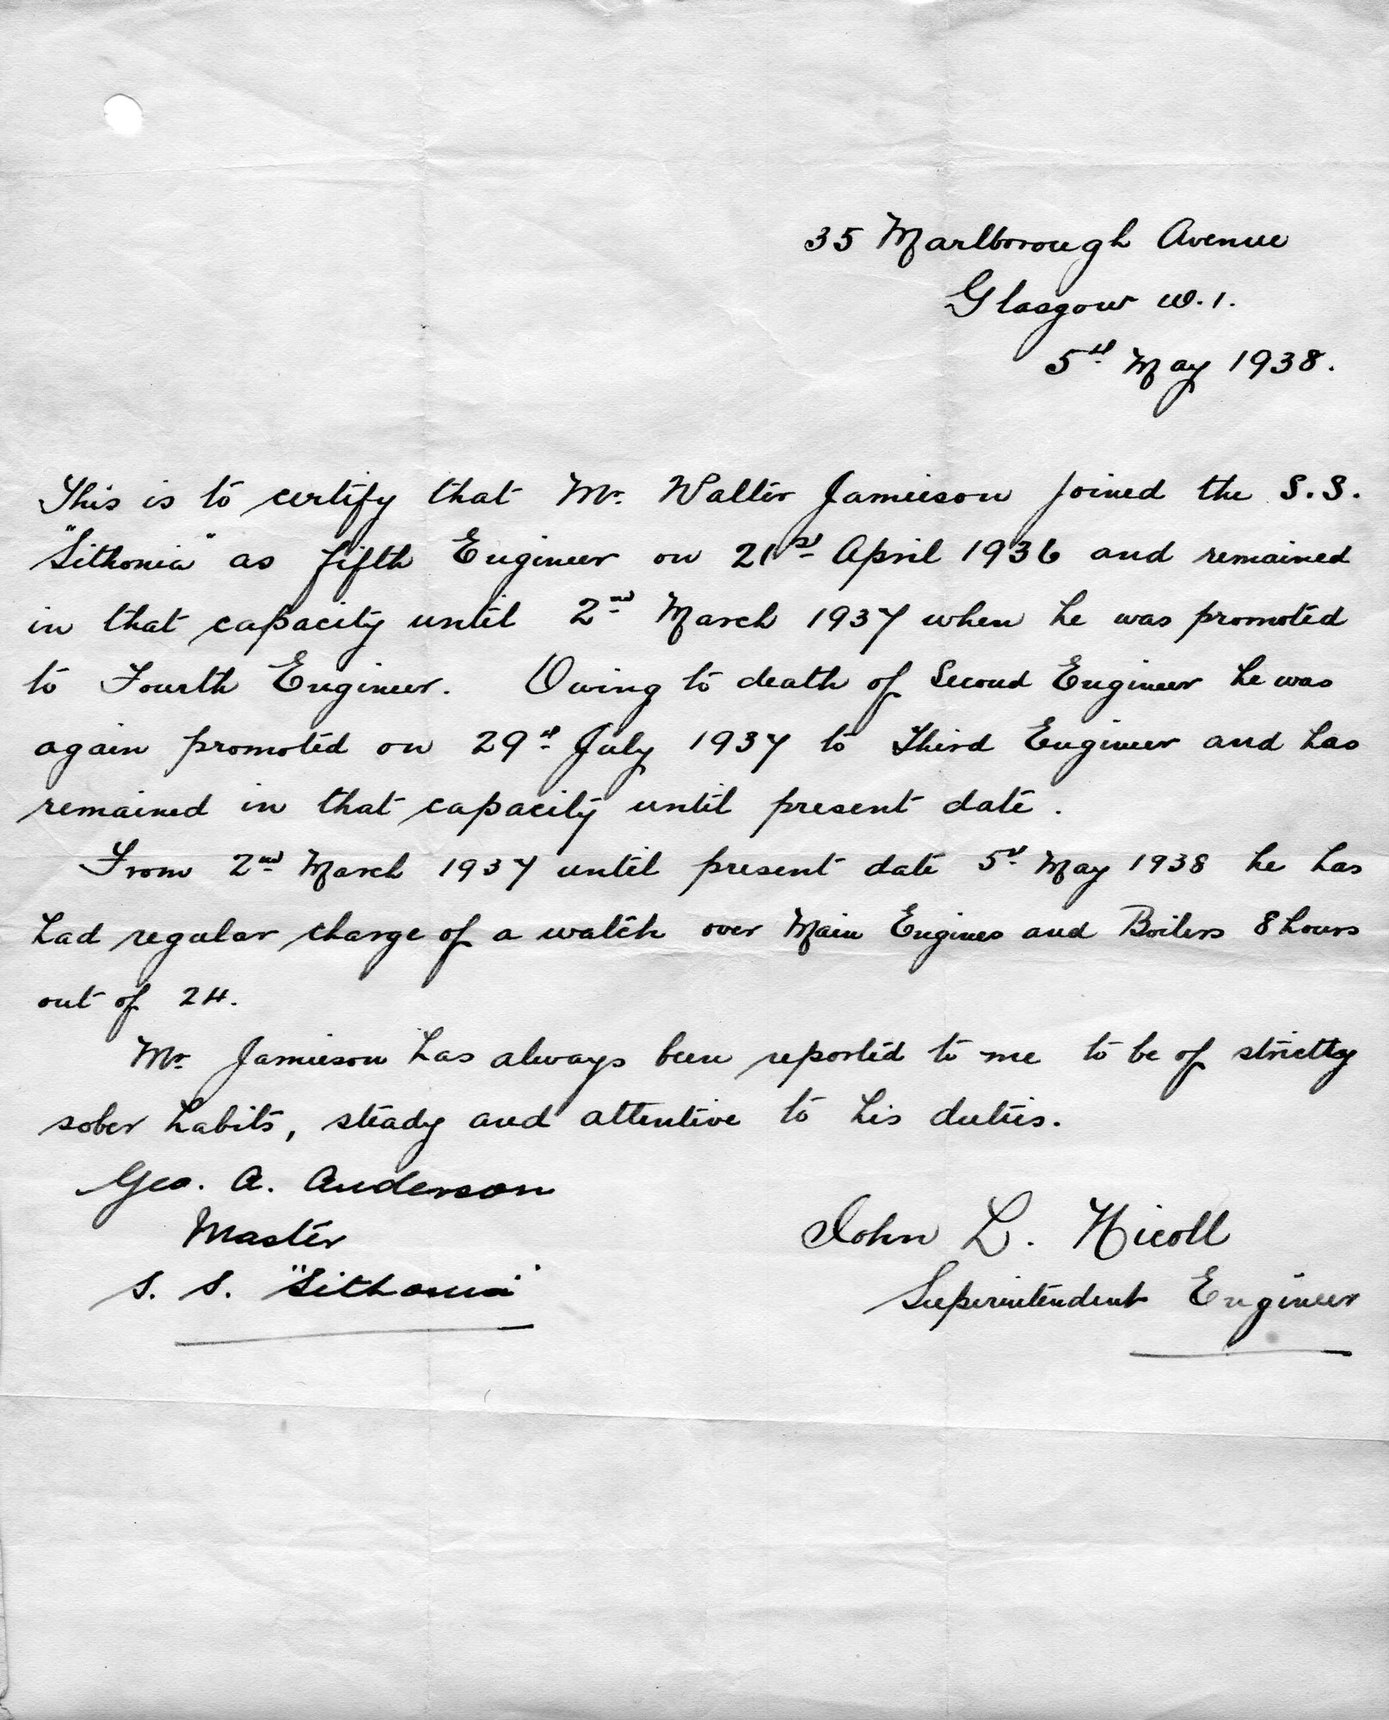 Letter Of Reference For Engineer In Merchant Navy 1938